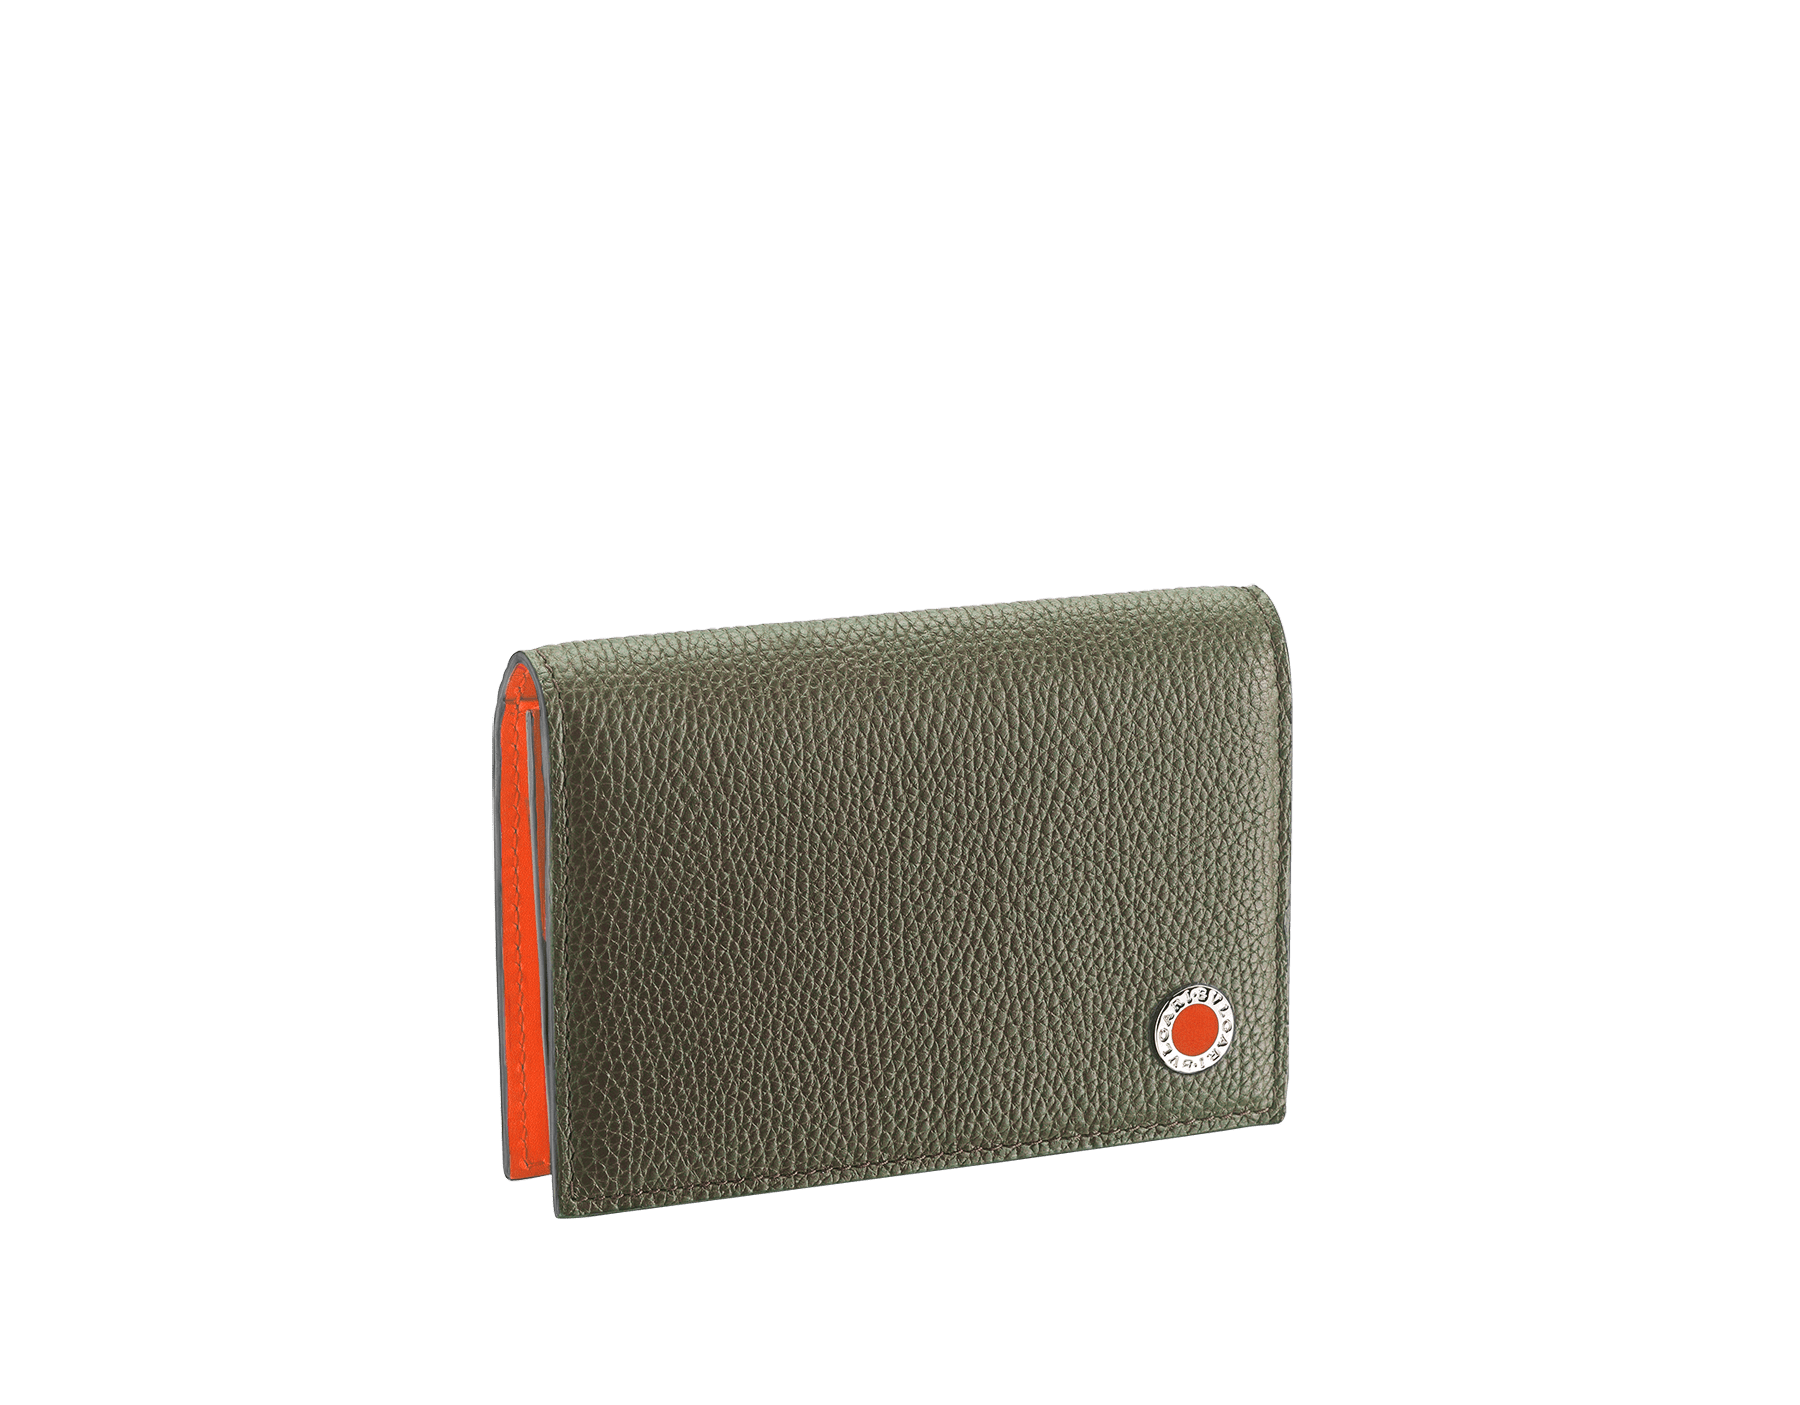 """BVLGARI BVLGARI"" business card holder in denim sapphire soft full grain calf leather and capri turquoise calf leather, with brass palladium plated logo décor coloured in capri turquoise enamel. BBM-BC-HOLD-SIMPLE-sfgcl image 1"